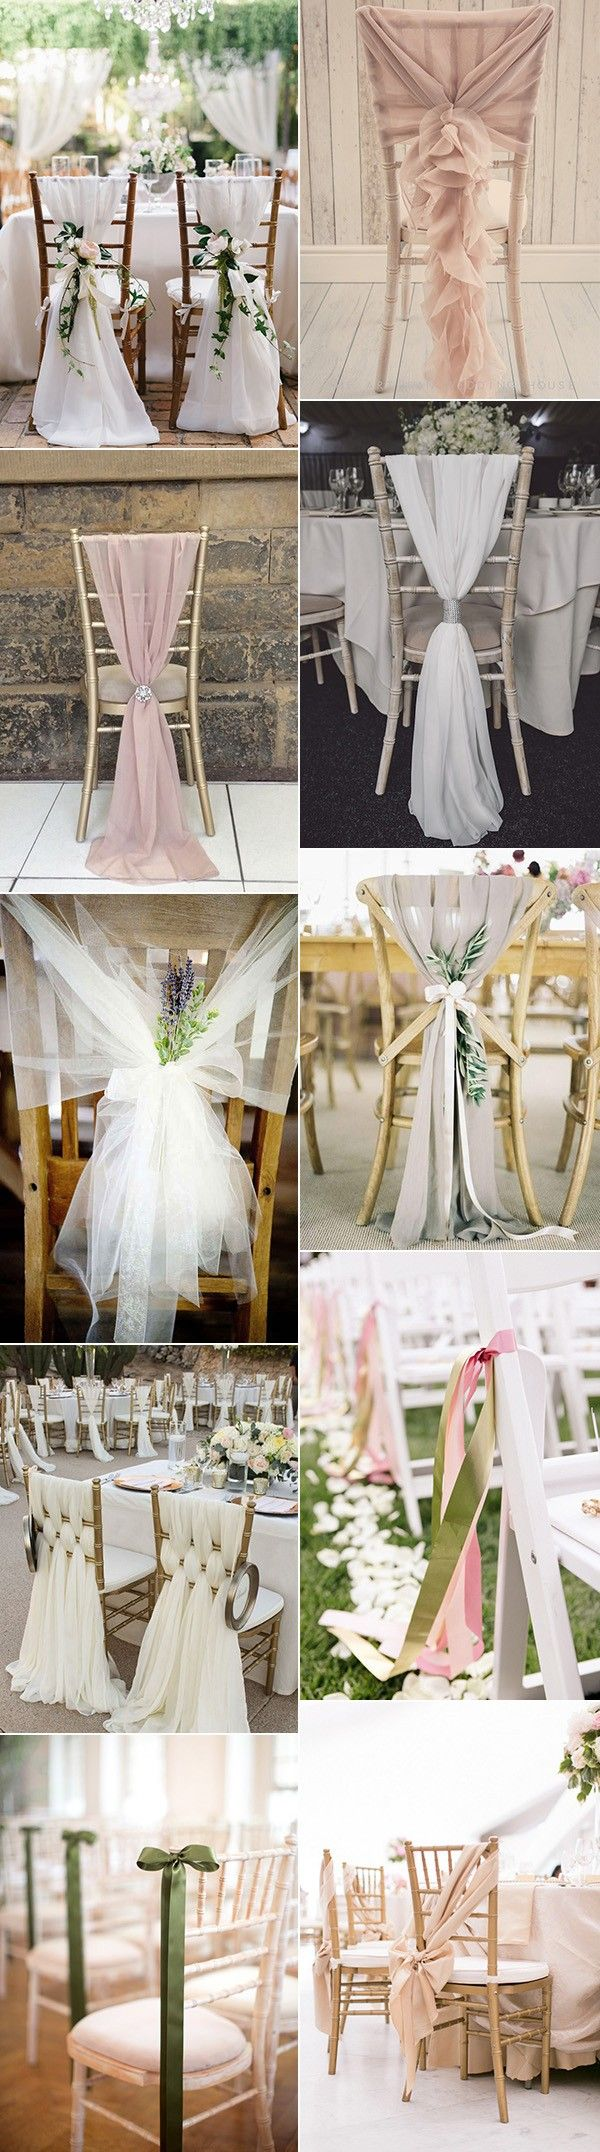 28 Awesome Wedding Chair Decoration Ideas For Ceremony And Reception Oh Best Day Ever Wedding Chair Decorations Wedding Reception Chairs Wedding Chairs